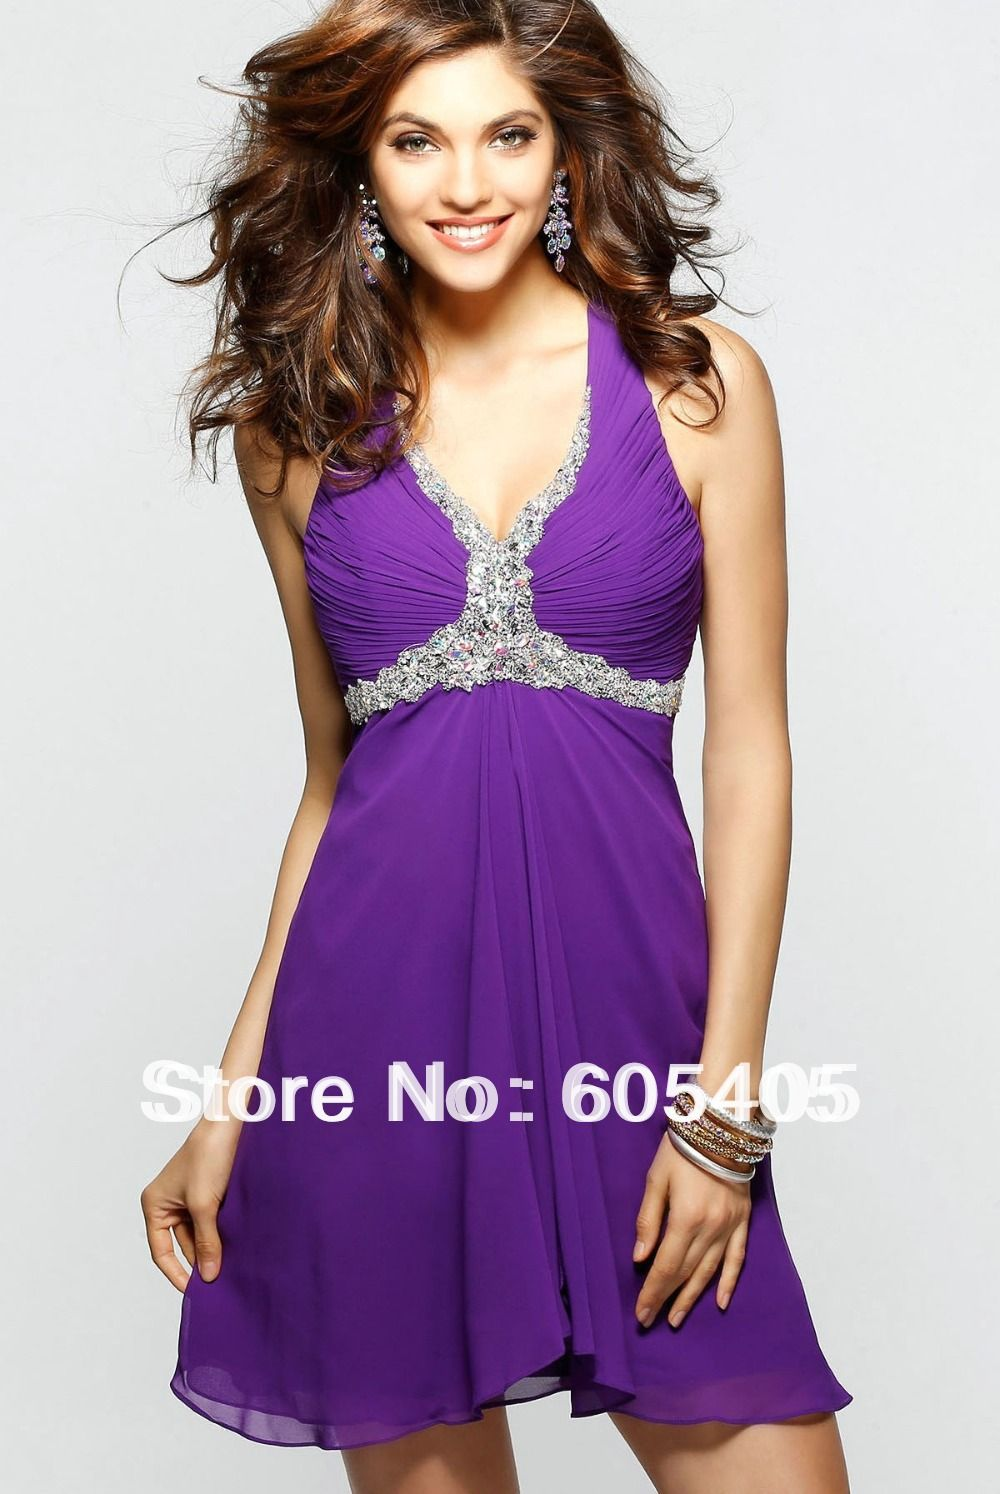 Royal Purple Cocktail Dresses | Dress images | Adorable Wallpapers ...